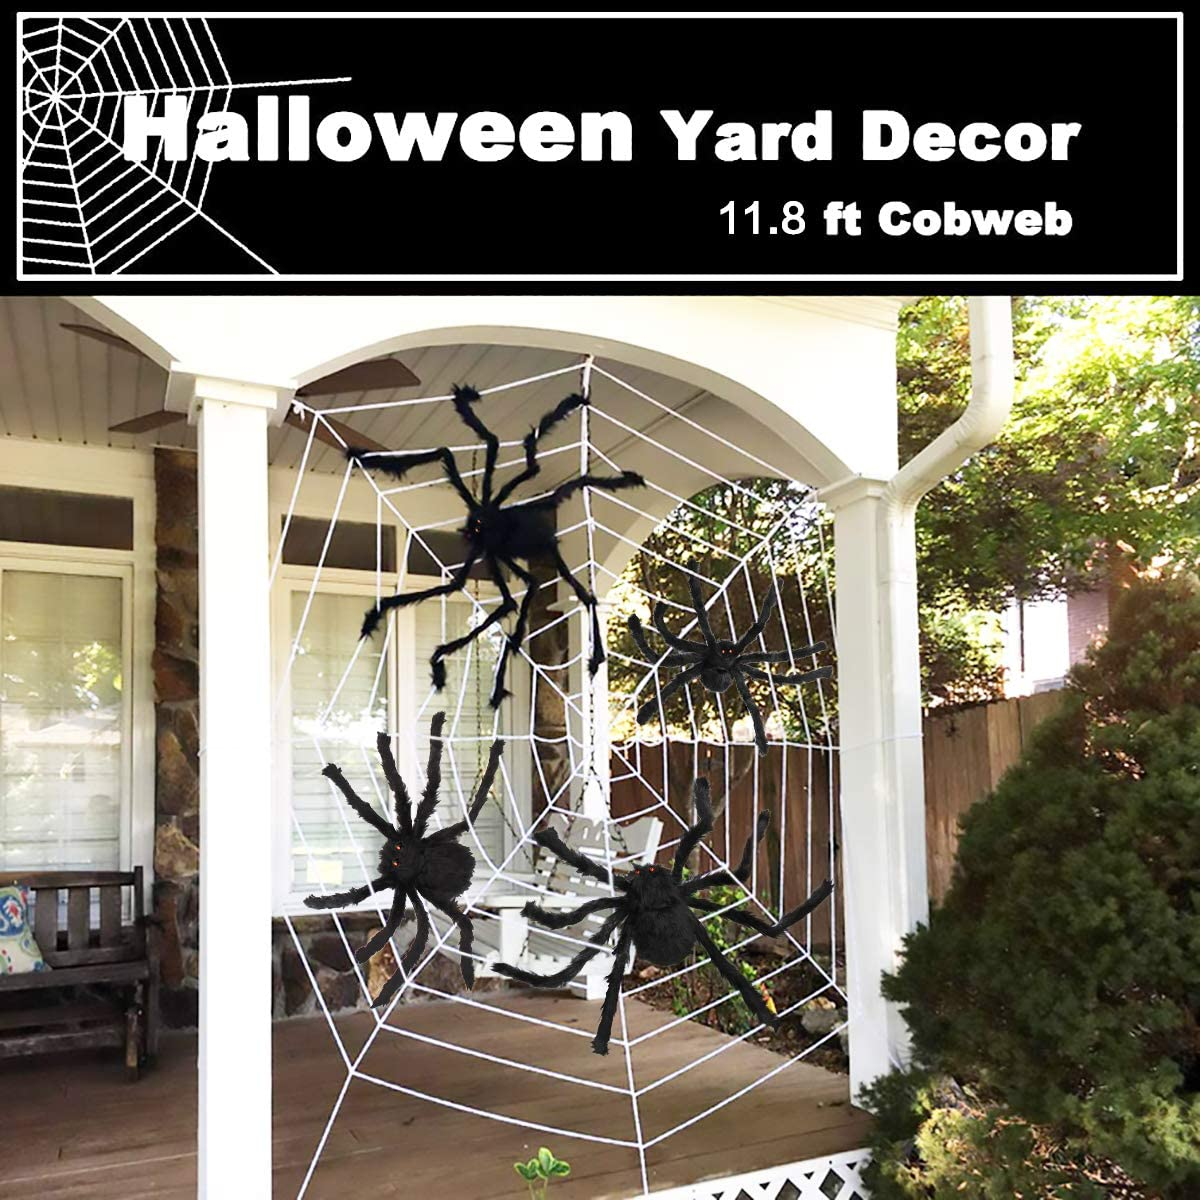 Aitey Halloween Scary Giant Spider Set with 4 Large Fake Spider Cobwebs for Window Wall and Yard Outdoor Halloween Decor Halloween Spider Decorations Spider Web 20 Small Plastic Spiders